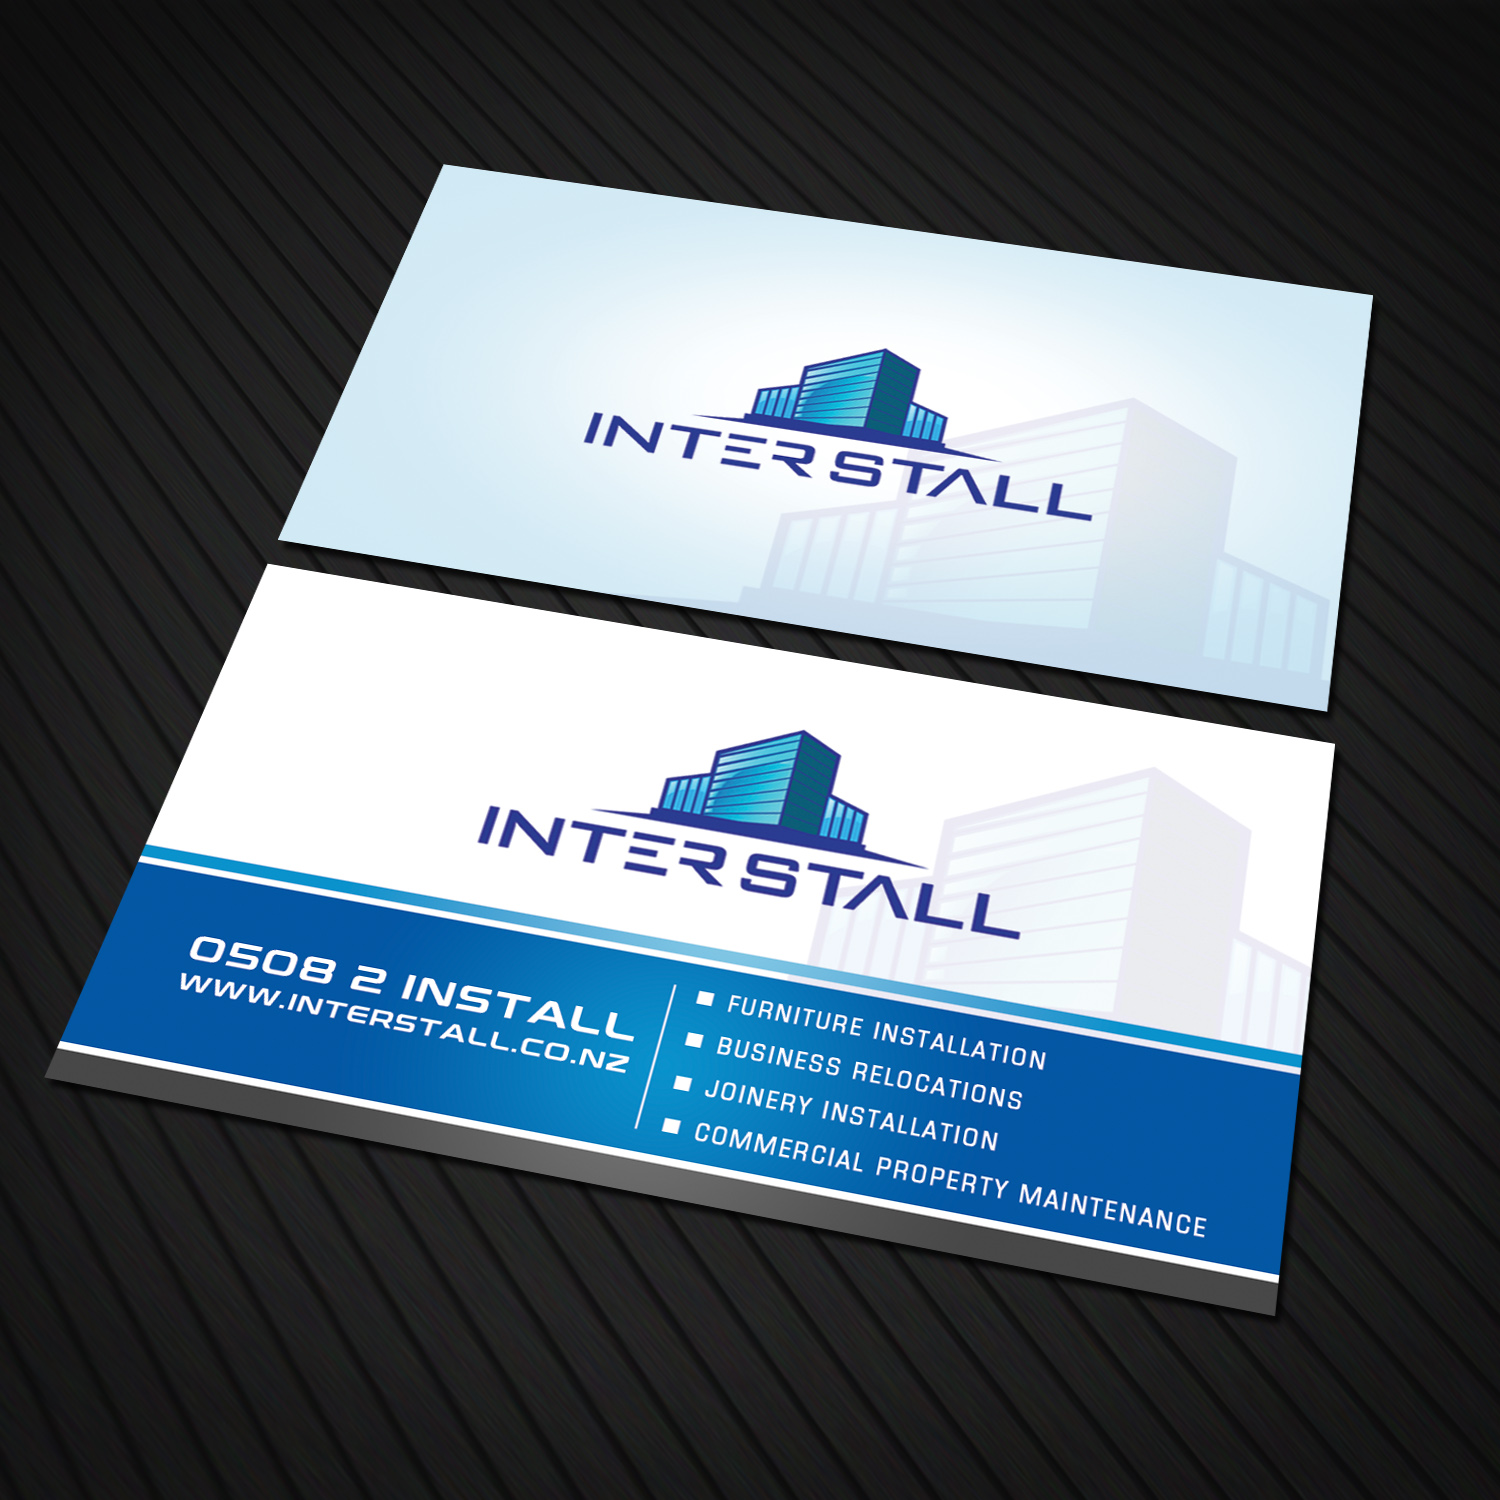 Serious modern trade business card design for interstall ltd by business card design by sandaruwan for interstall ltd design 16616837 colourmoves